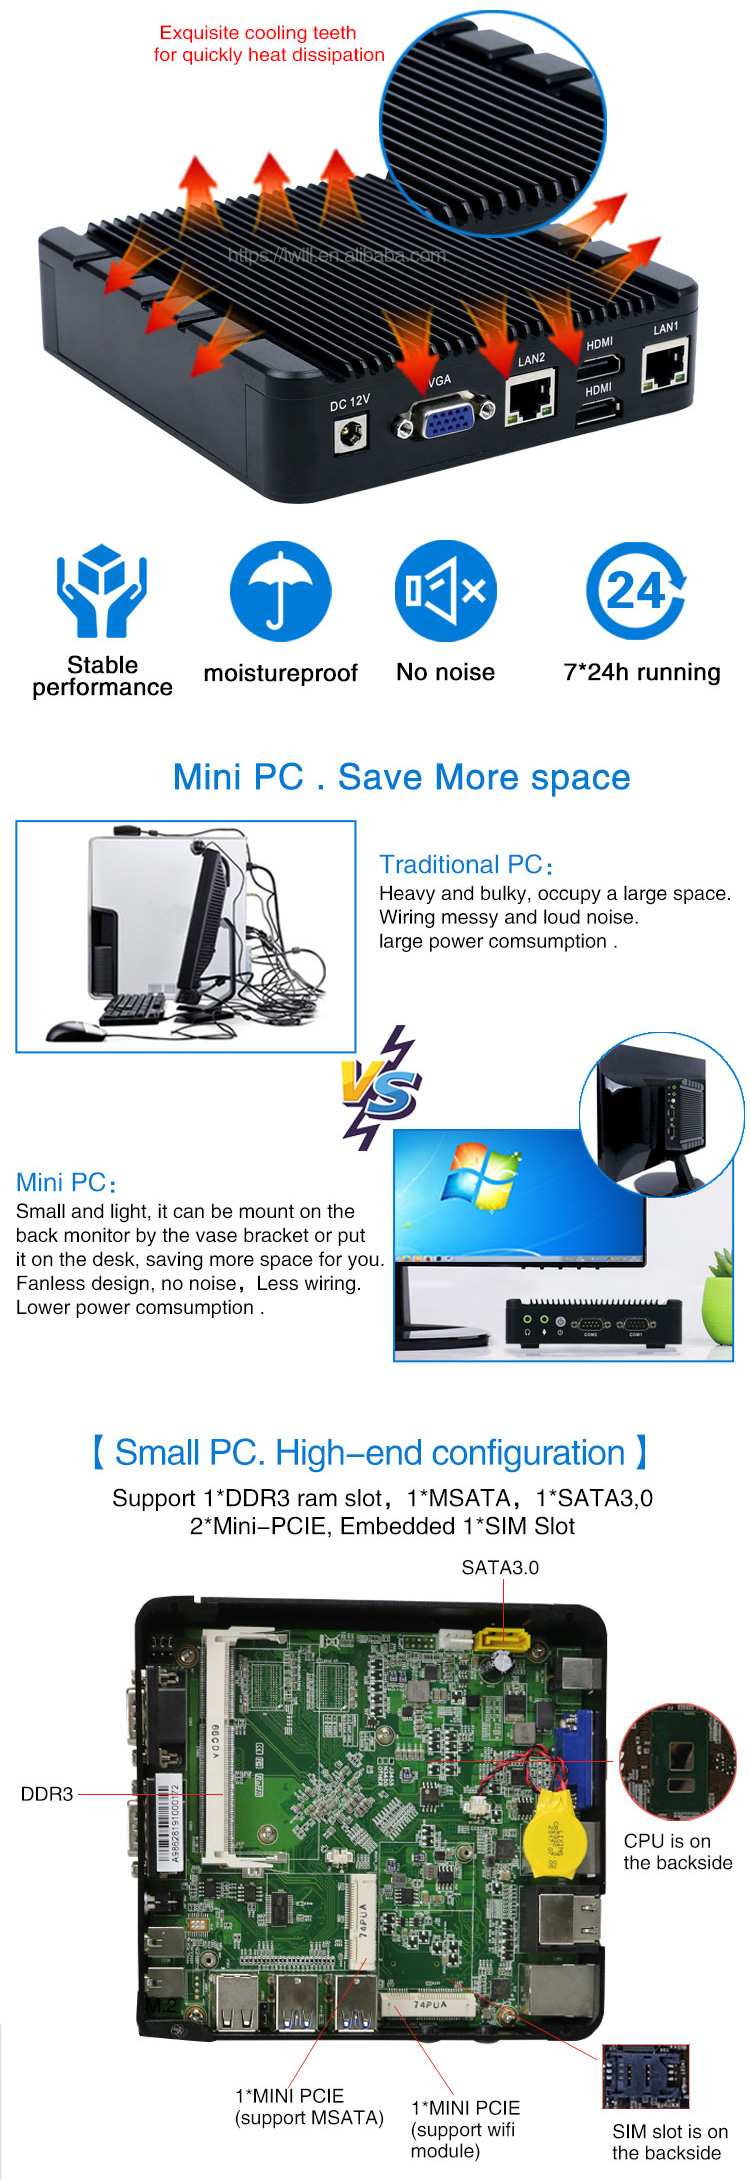 Fanless J3455 quad core nano itx gsm 2 ethernet mini pc with sim card slot